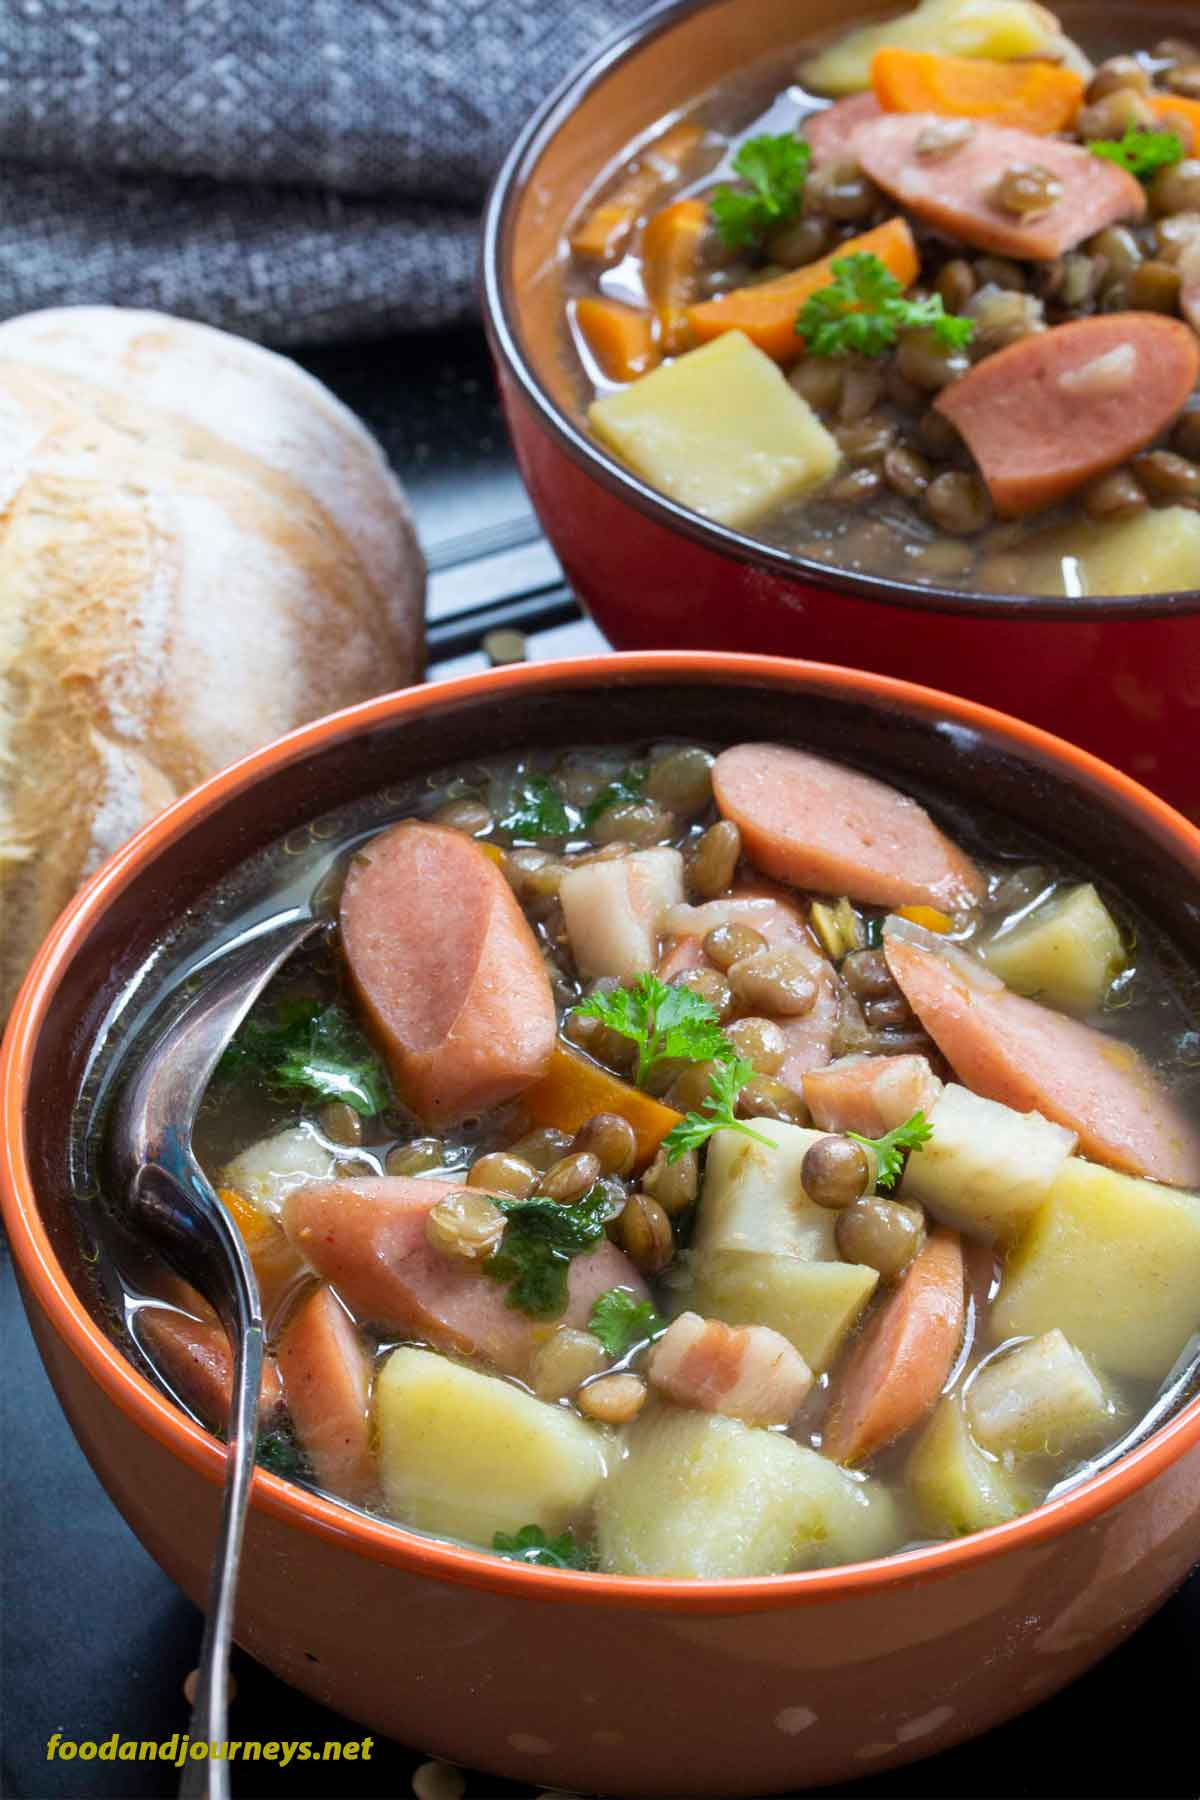 Two bowls of German Lentil Soup with Frankfurters are served, with some bread and wine. A vegetable soup that can also be eaten on its own, as a full meal. One of those easy soup recipe to have around when the weather gets chilly!